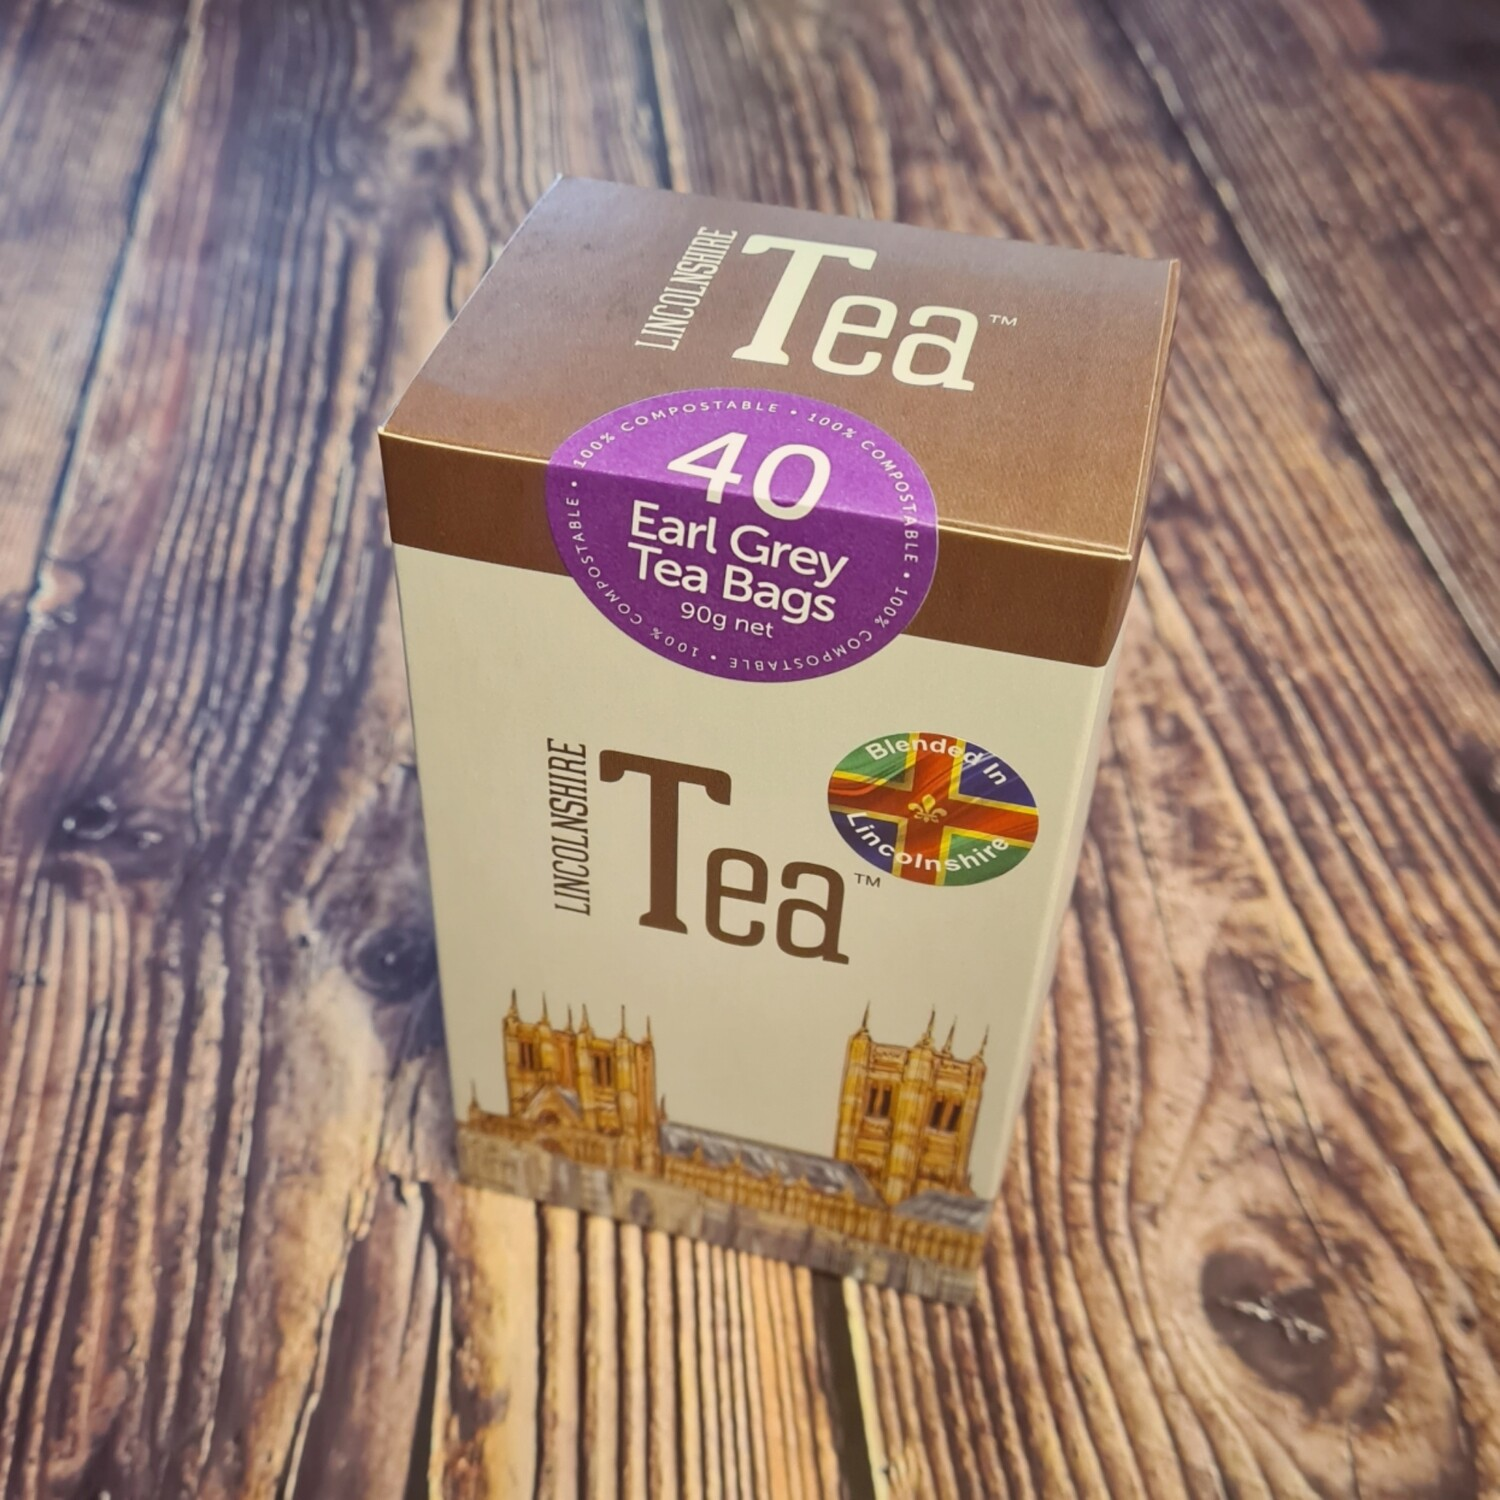 Lincolnshire Tea 40 Bags Earl Grey